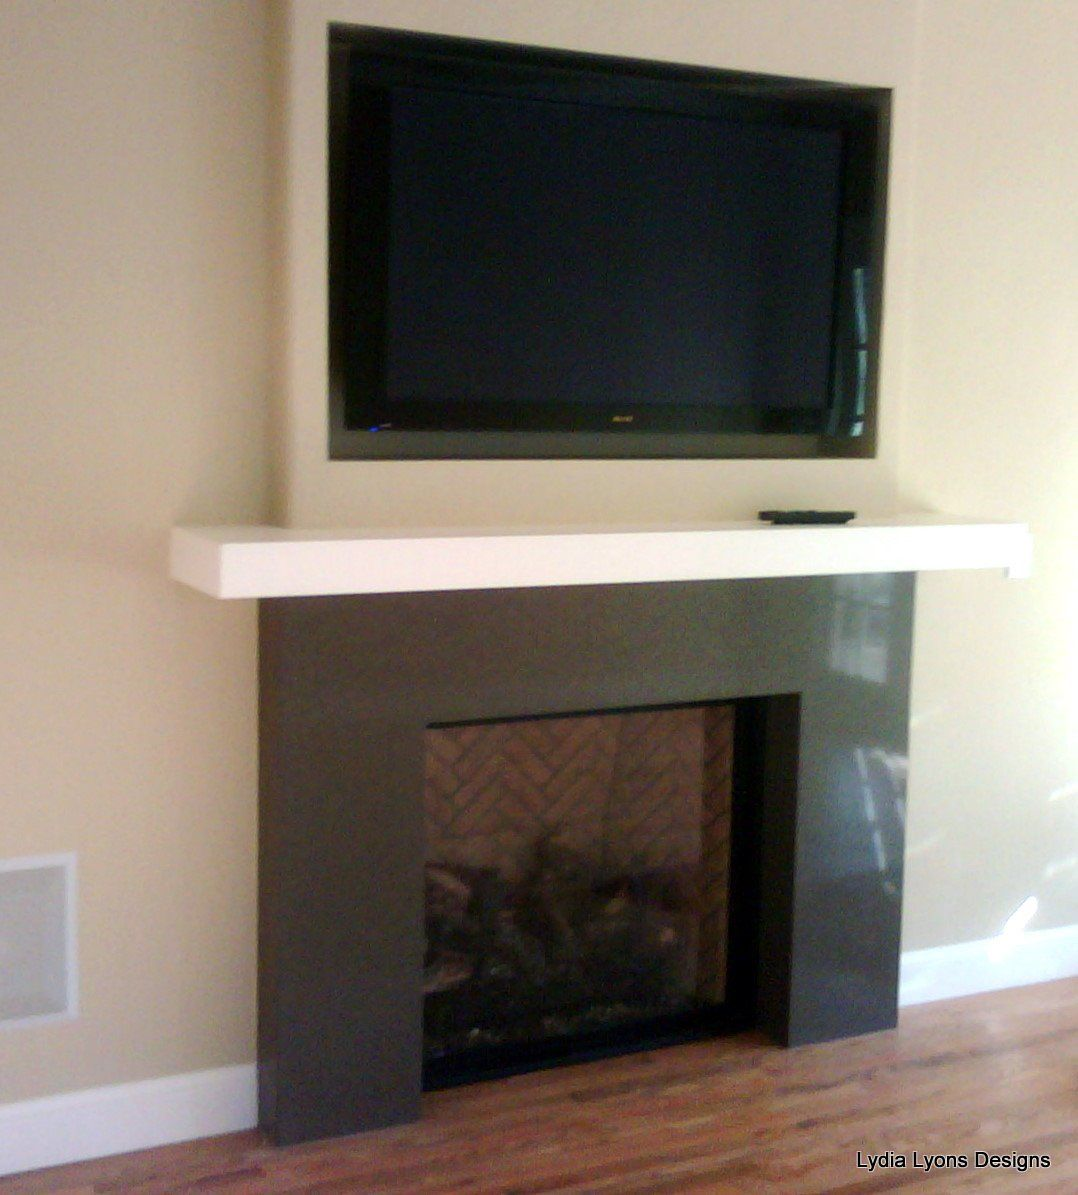 Recessed tv over fireplace   Basement Renovation ...